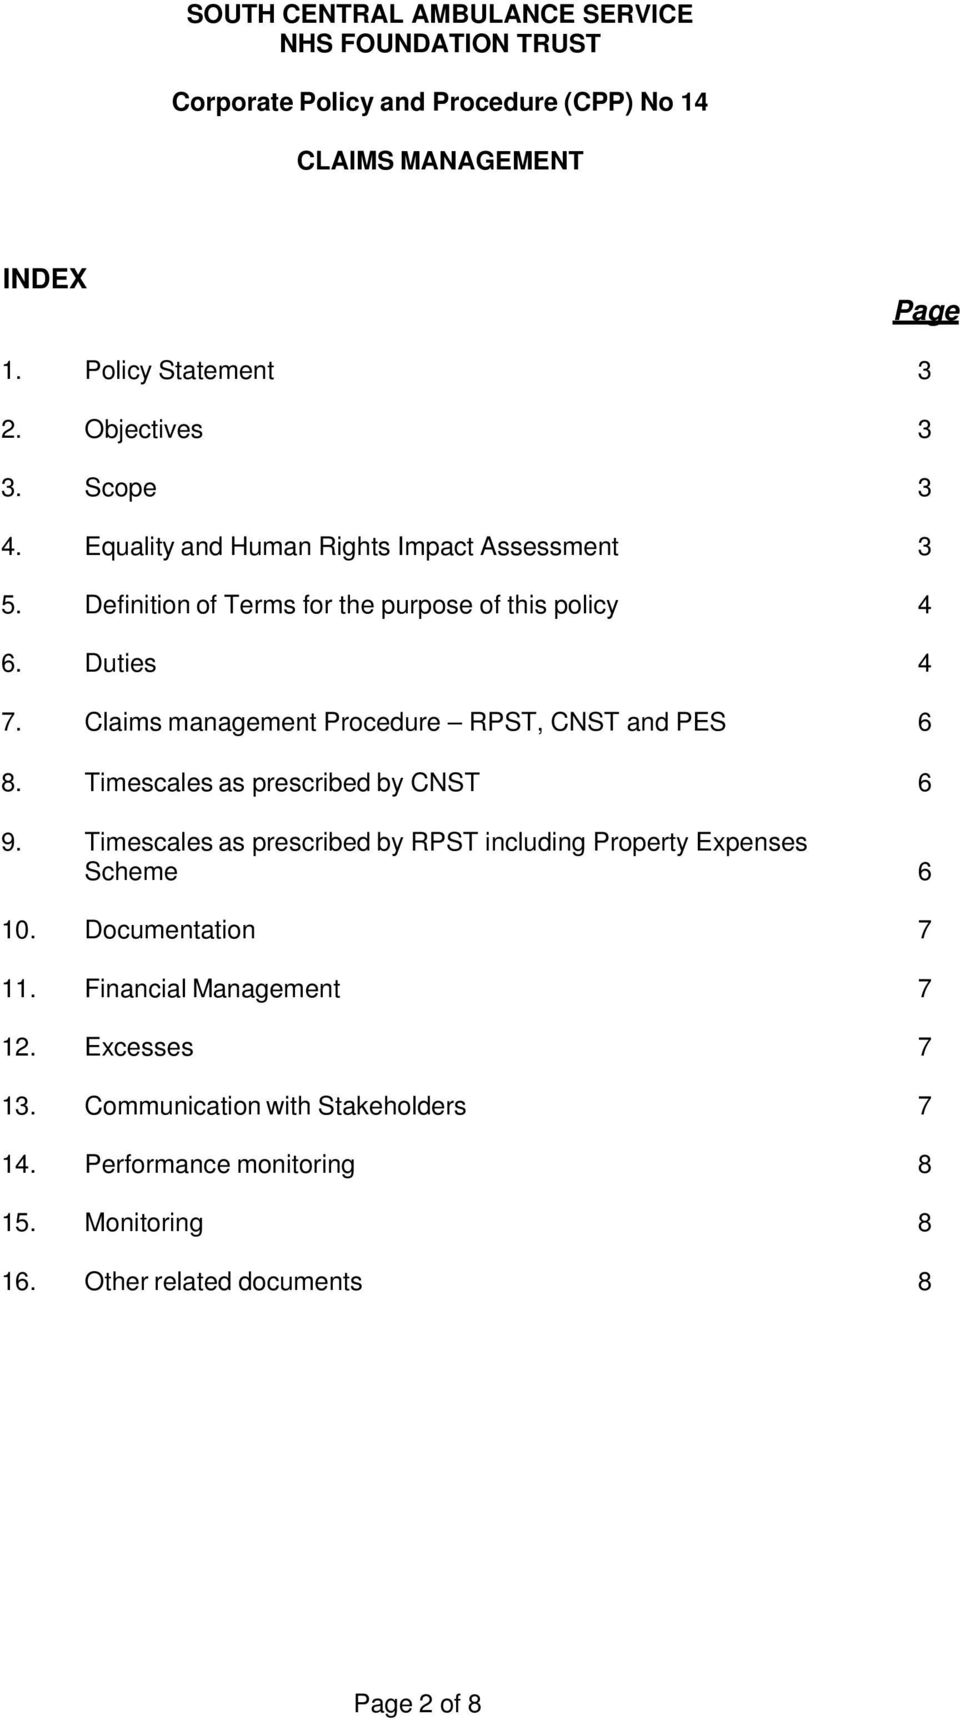 Claims management Procedure RPST, CNST and PES 6 8. Timescales as prescribed by CNST 6 9.